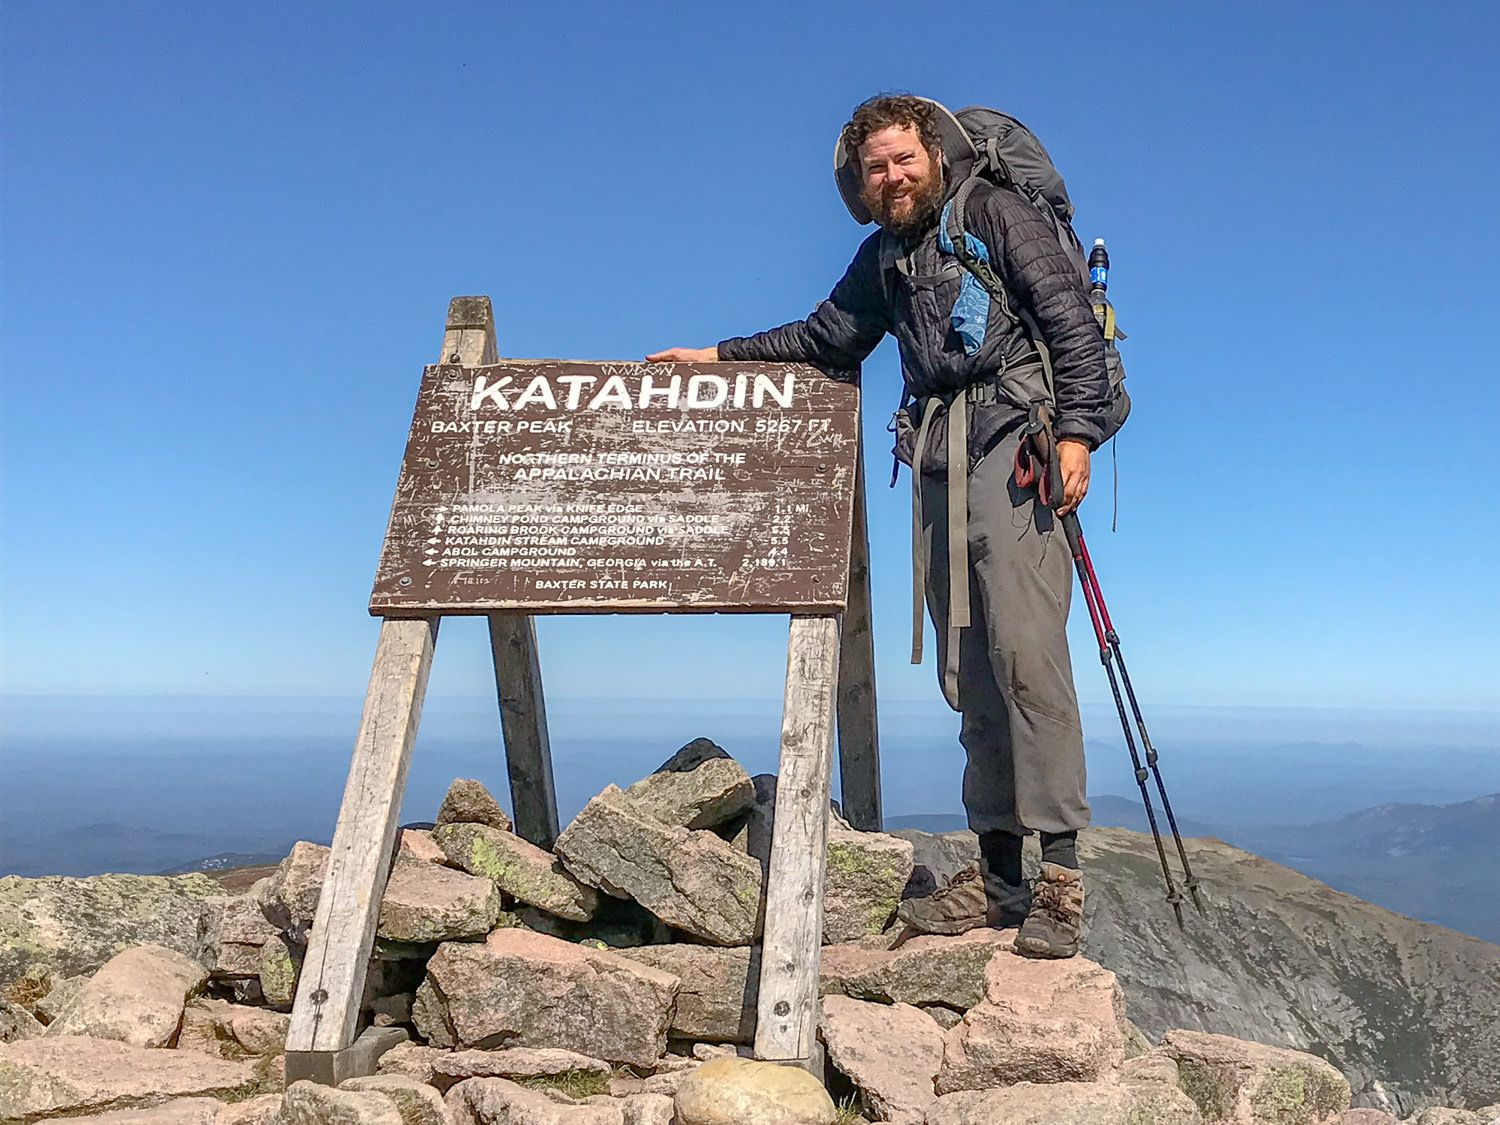 Yours truly standing at the top of Mt Katahdin